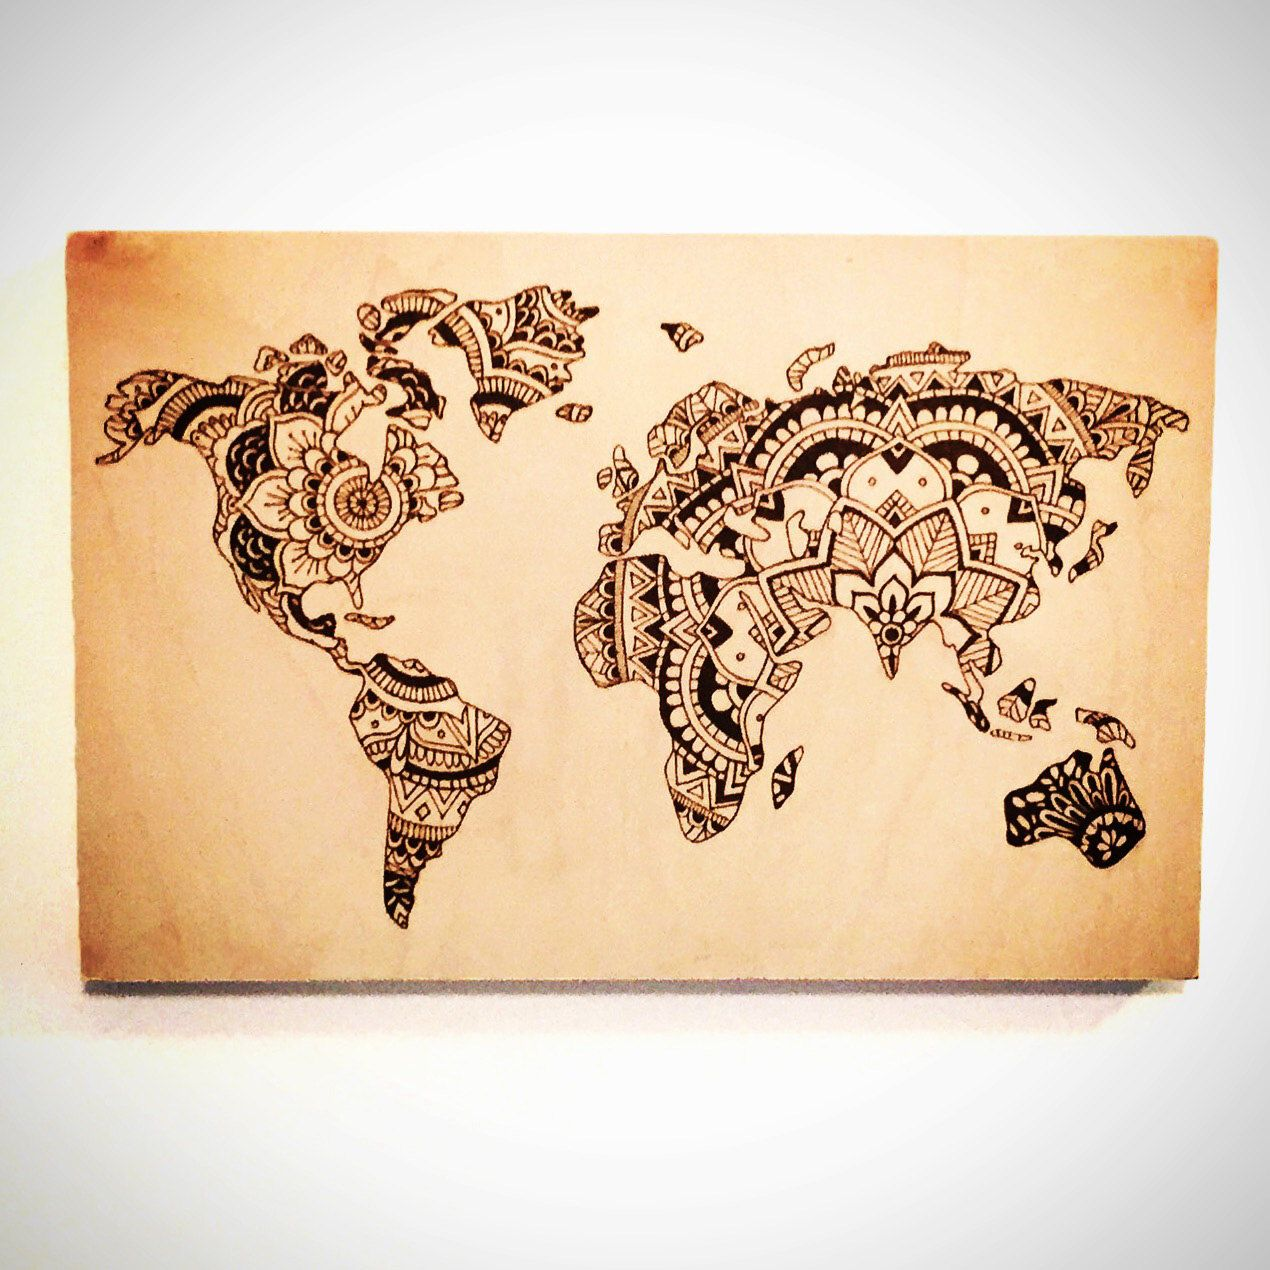 12x18 wood burned sign world map mandala home decor by 12x18 wood burned sign world map mandala home decor by thesourpeach gumiabroncs Image collections